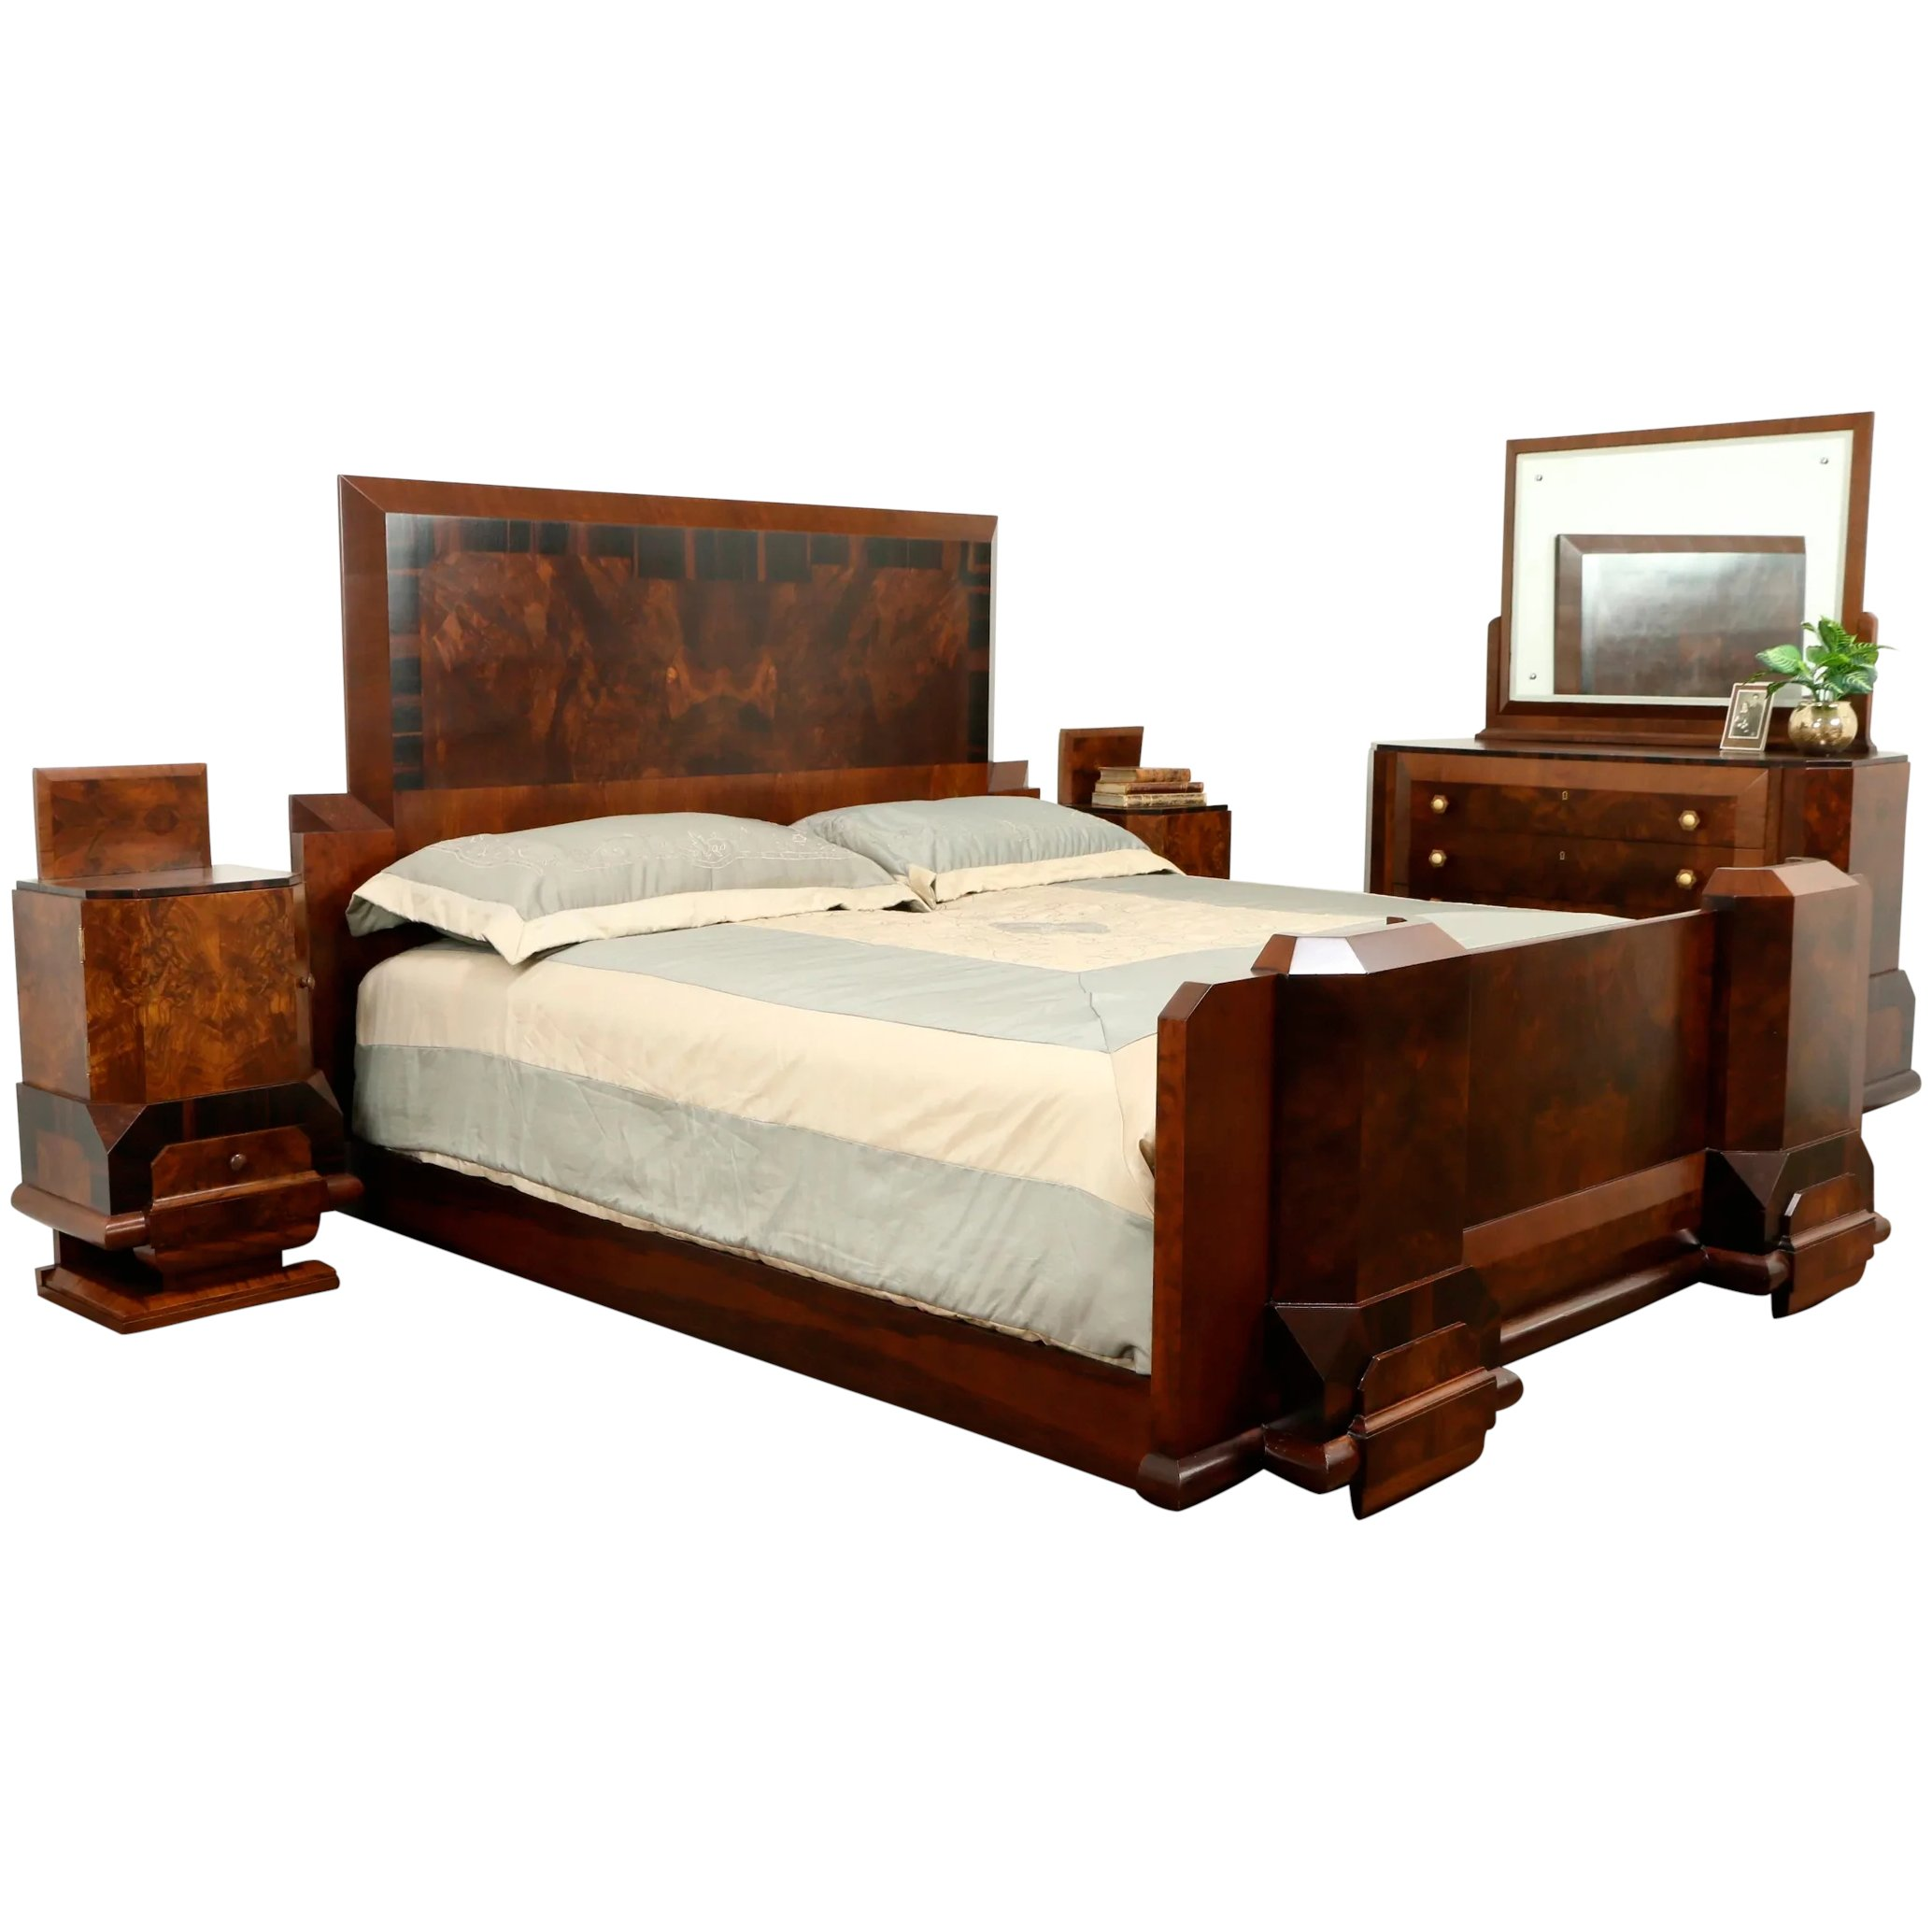 Italian Art Deco Rosewood Antique 4 Pc Bedroom Set, King Size Bed #31562